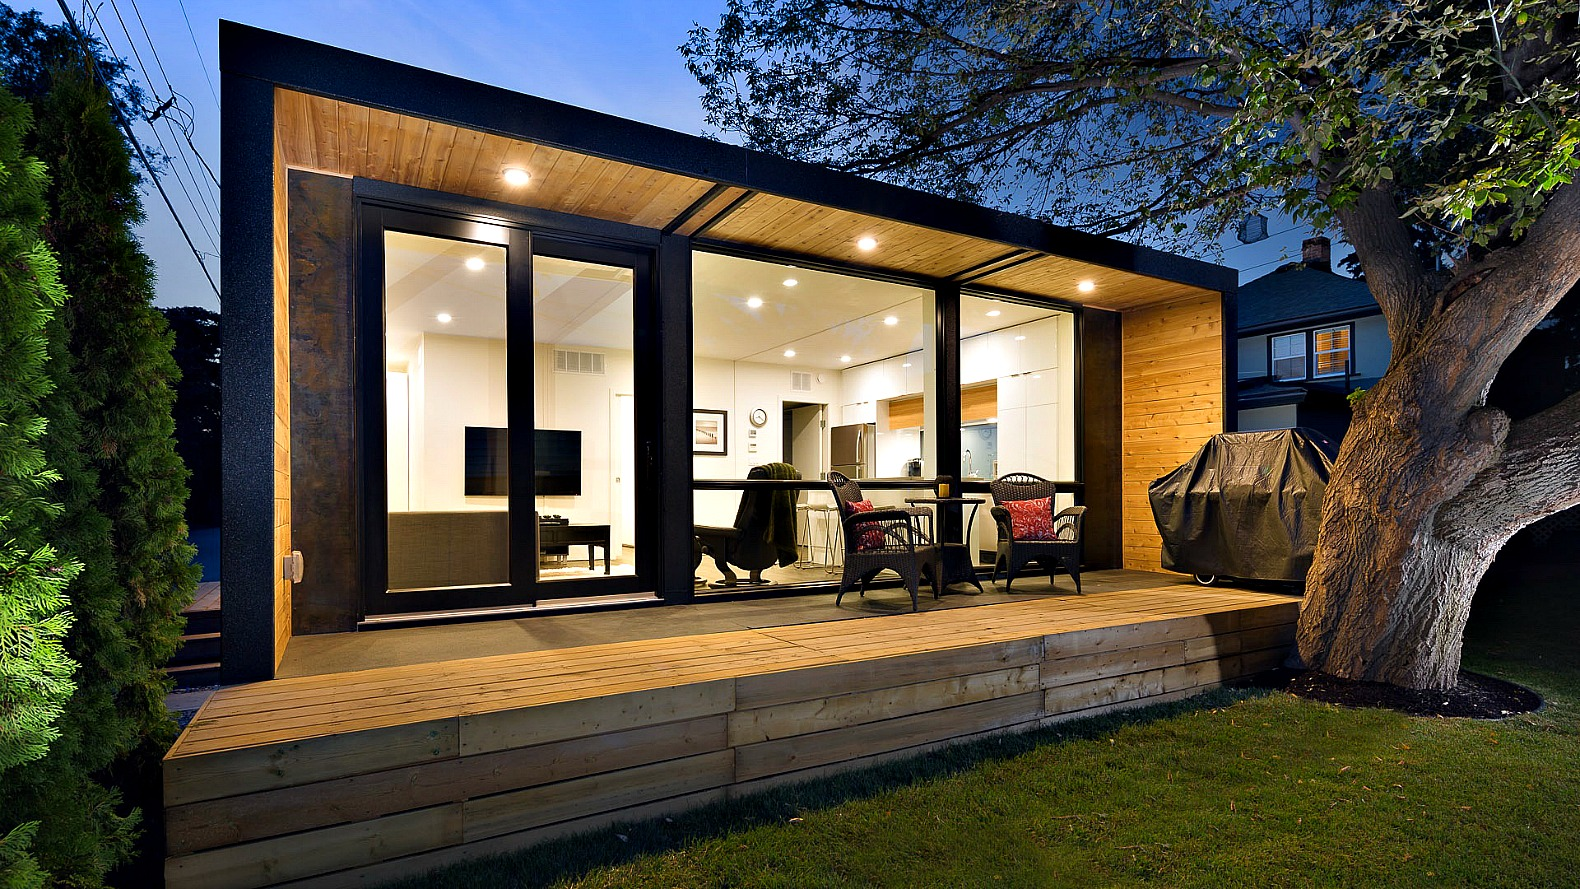 HonoMobos container homes can be shipped anywhere in North America